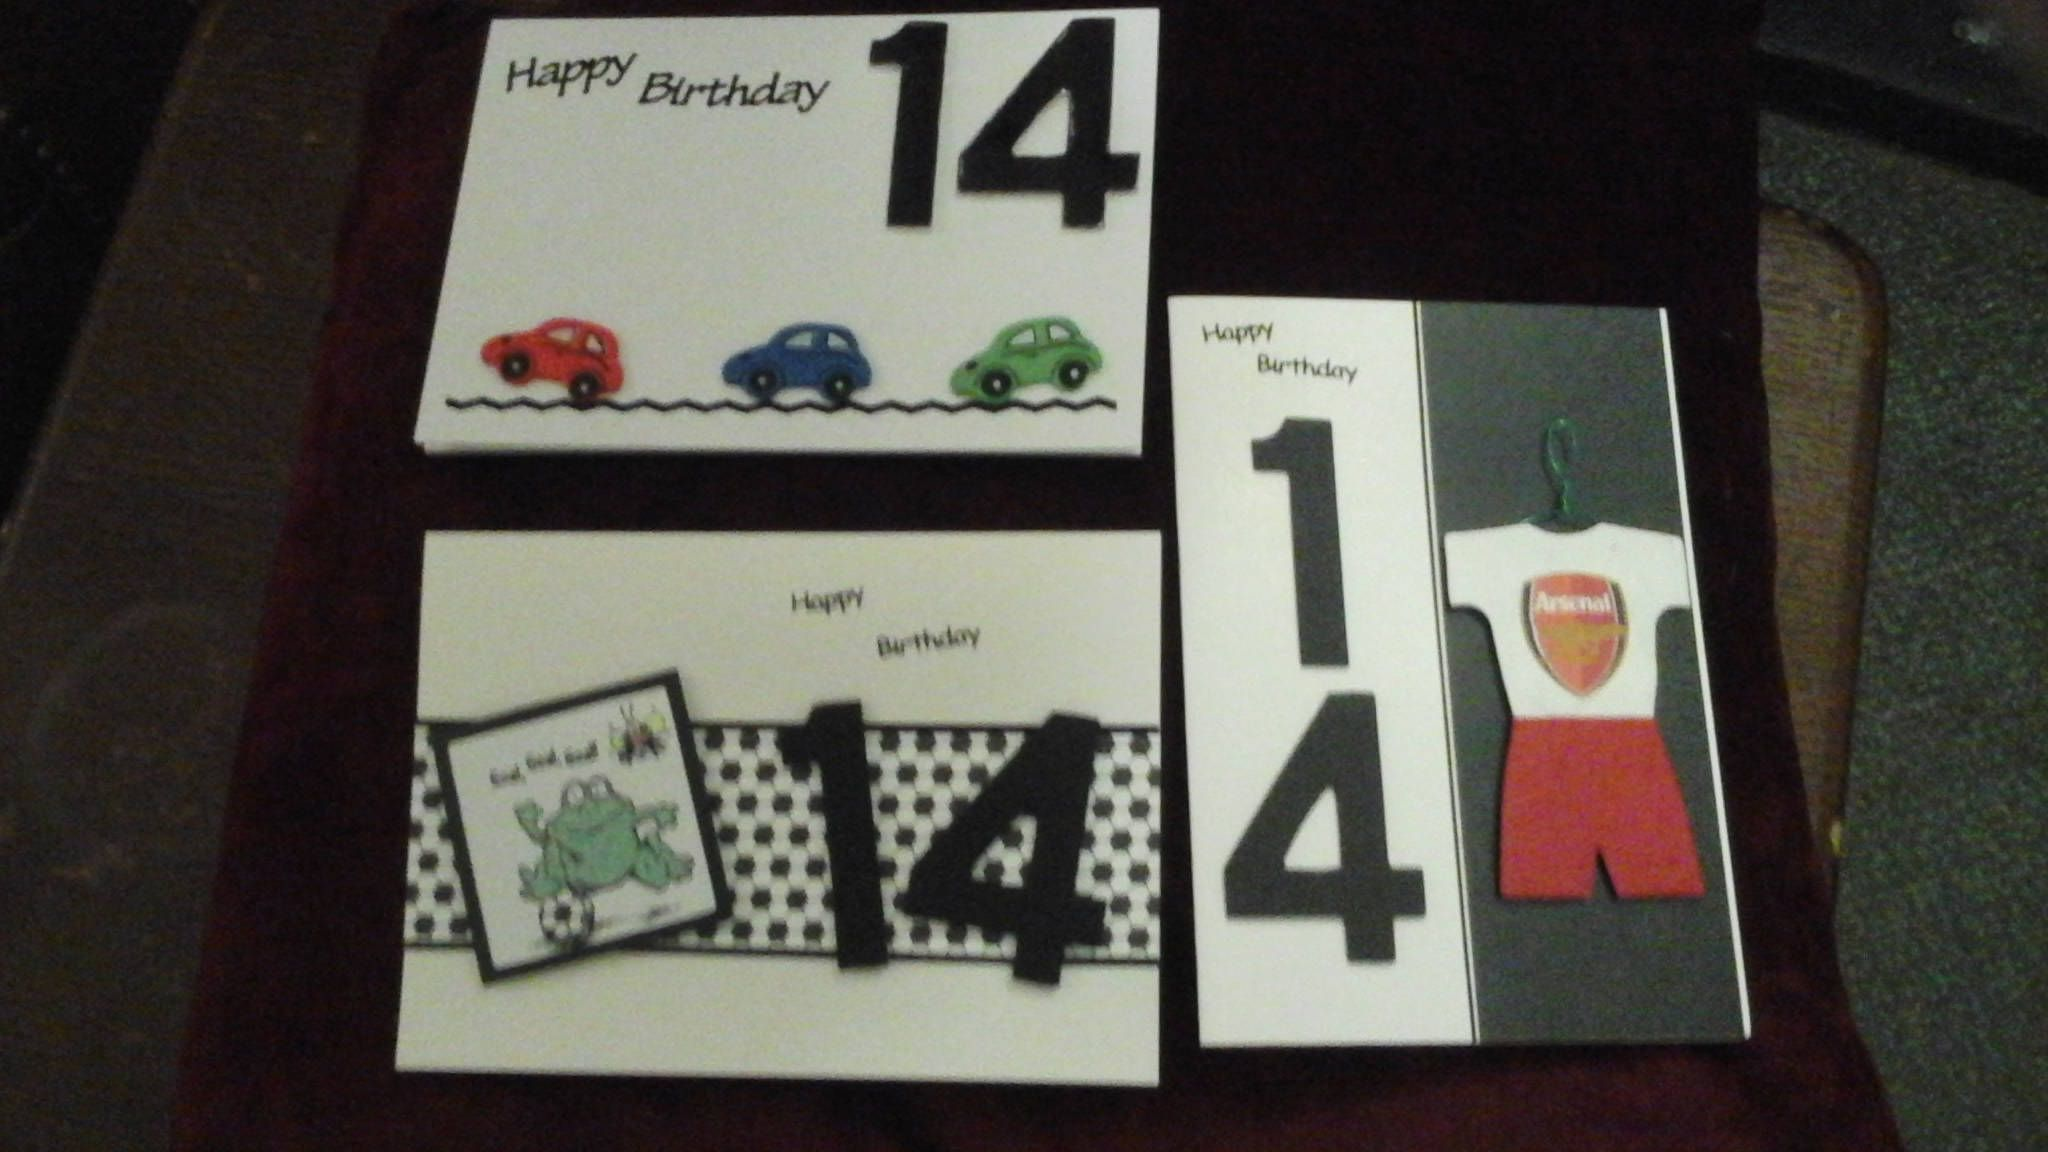 14 Year Old Birthday Card By Crazyladysemporium On Etsy Handmade